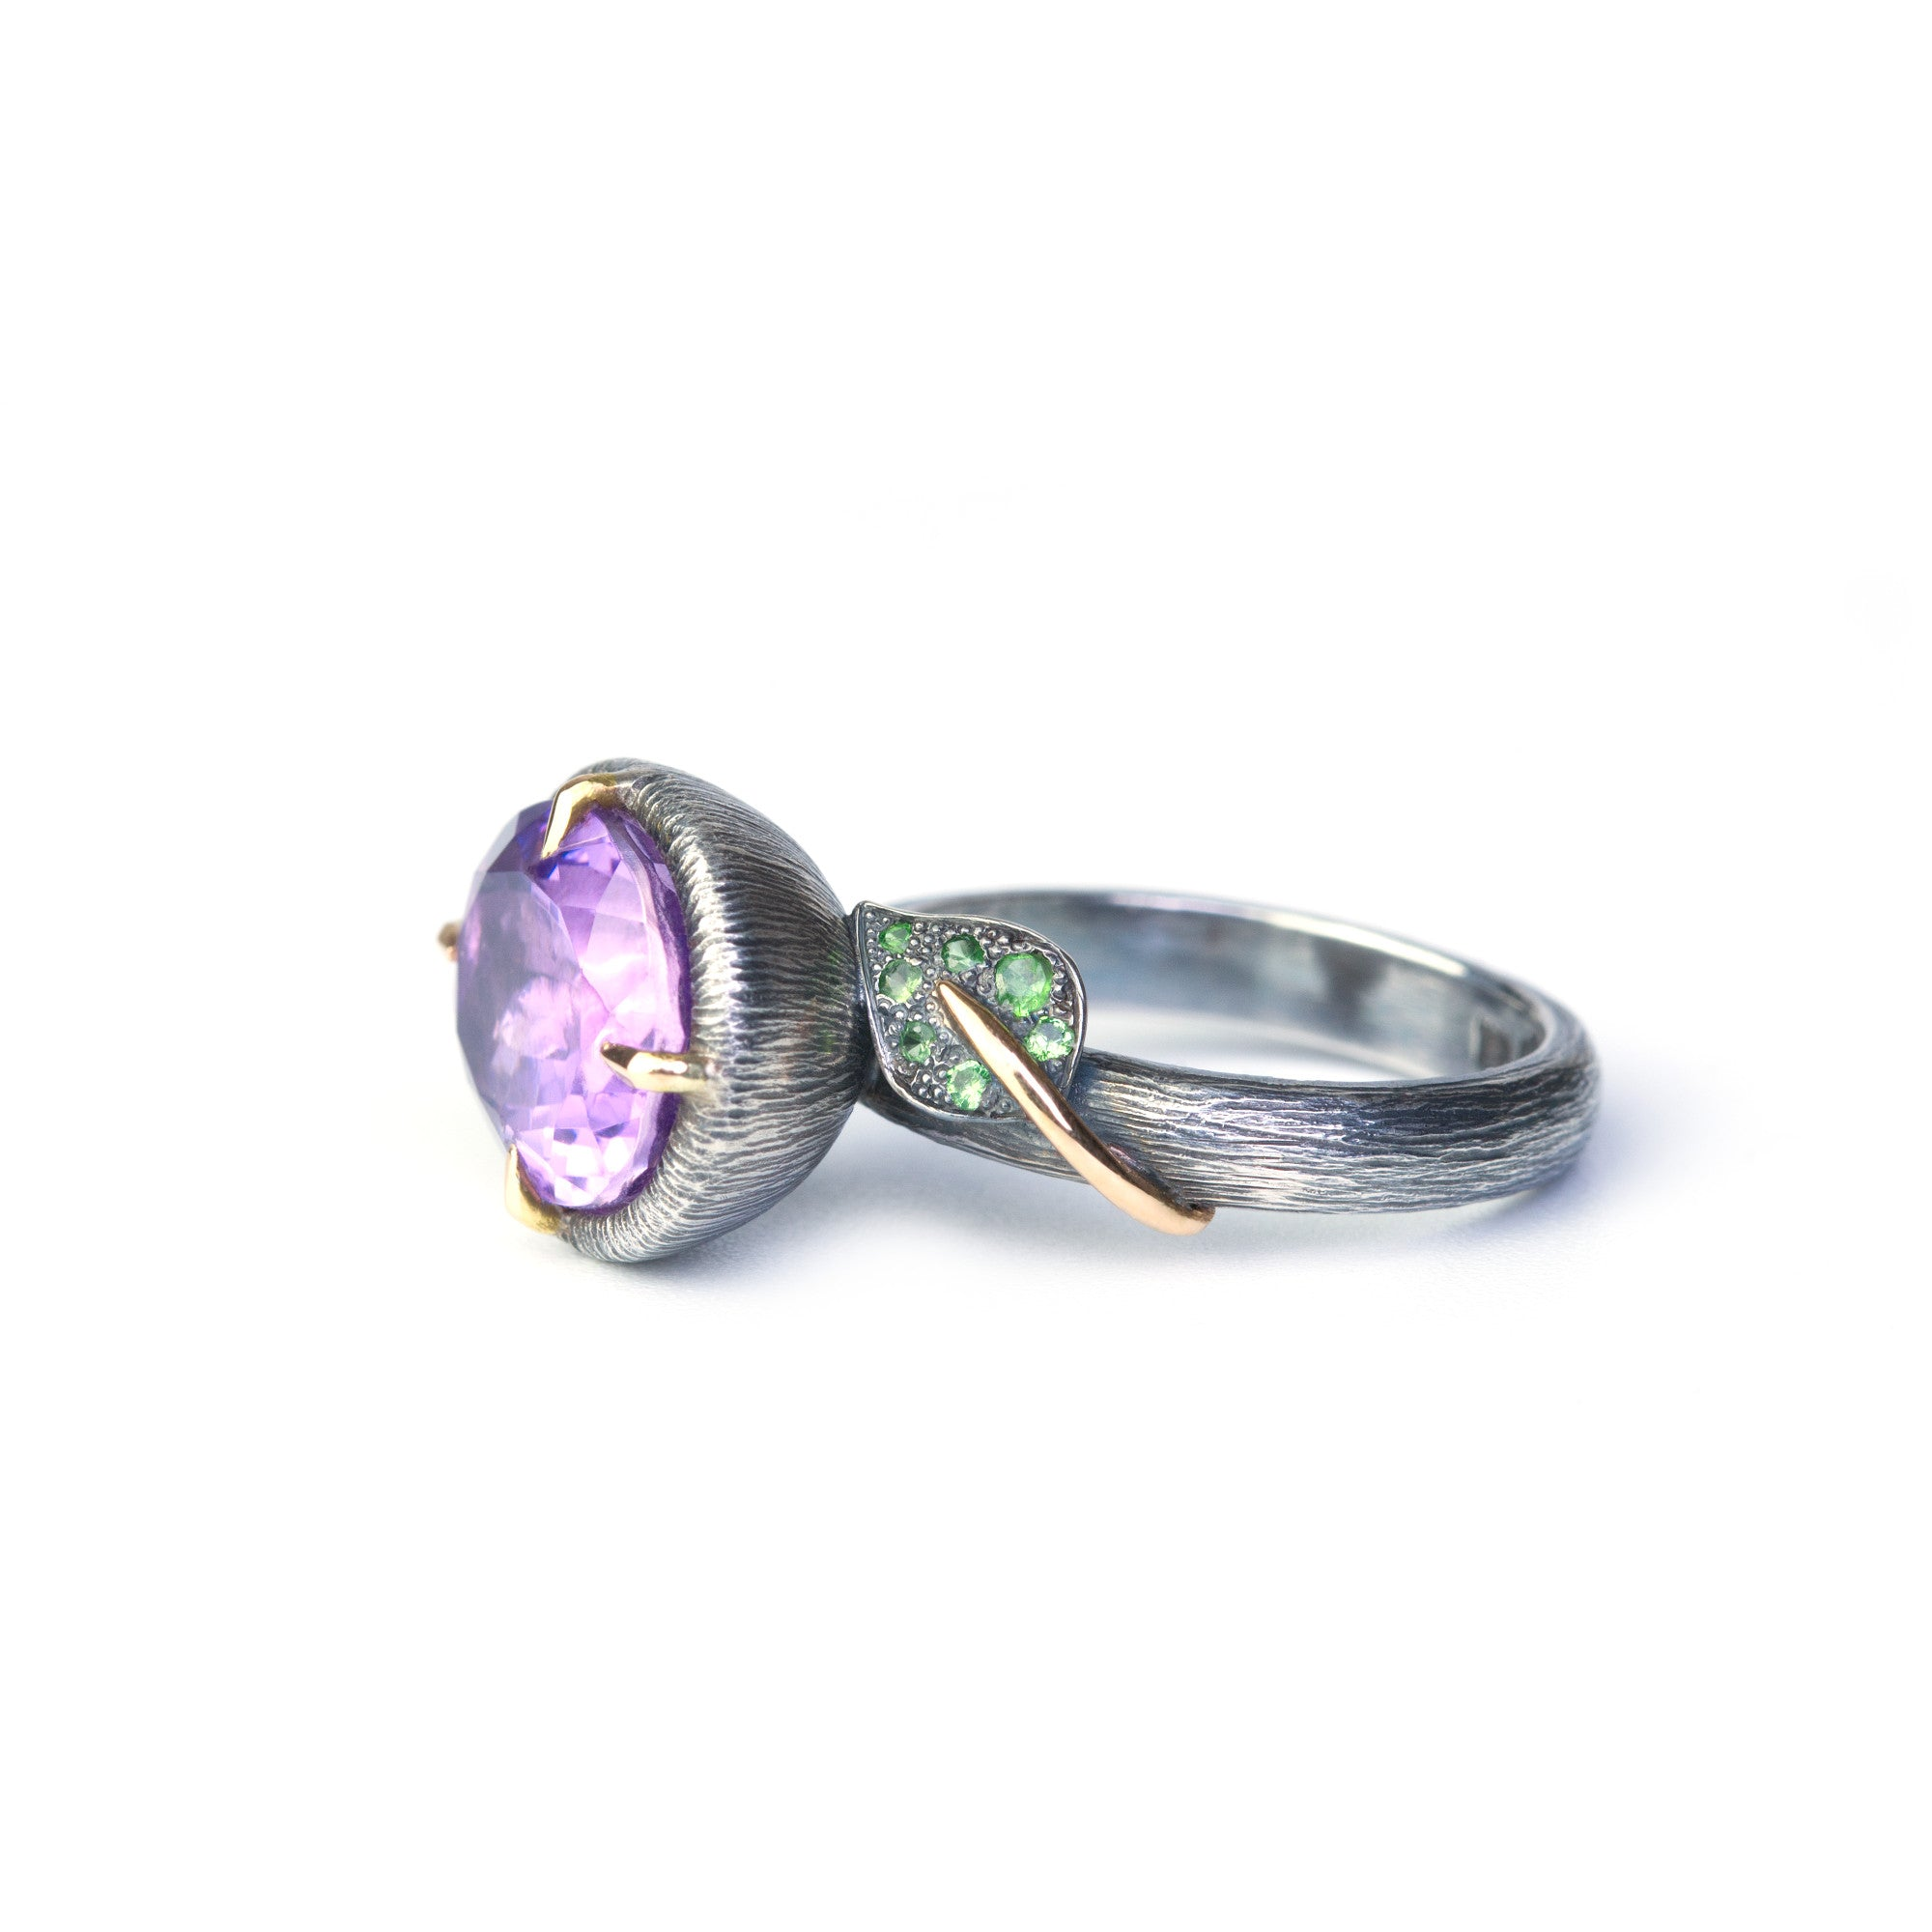 Romantic ring handcrafted in 18K gold and sterling silver with amethyst. Made by Ewa Z. Sleziona Jewellery